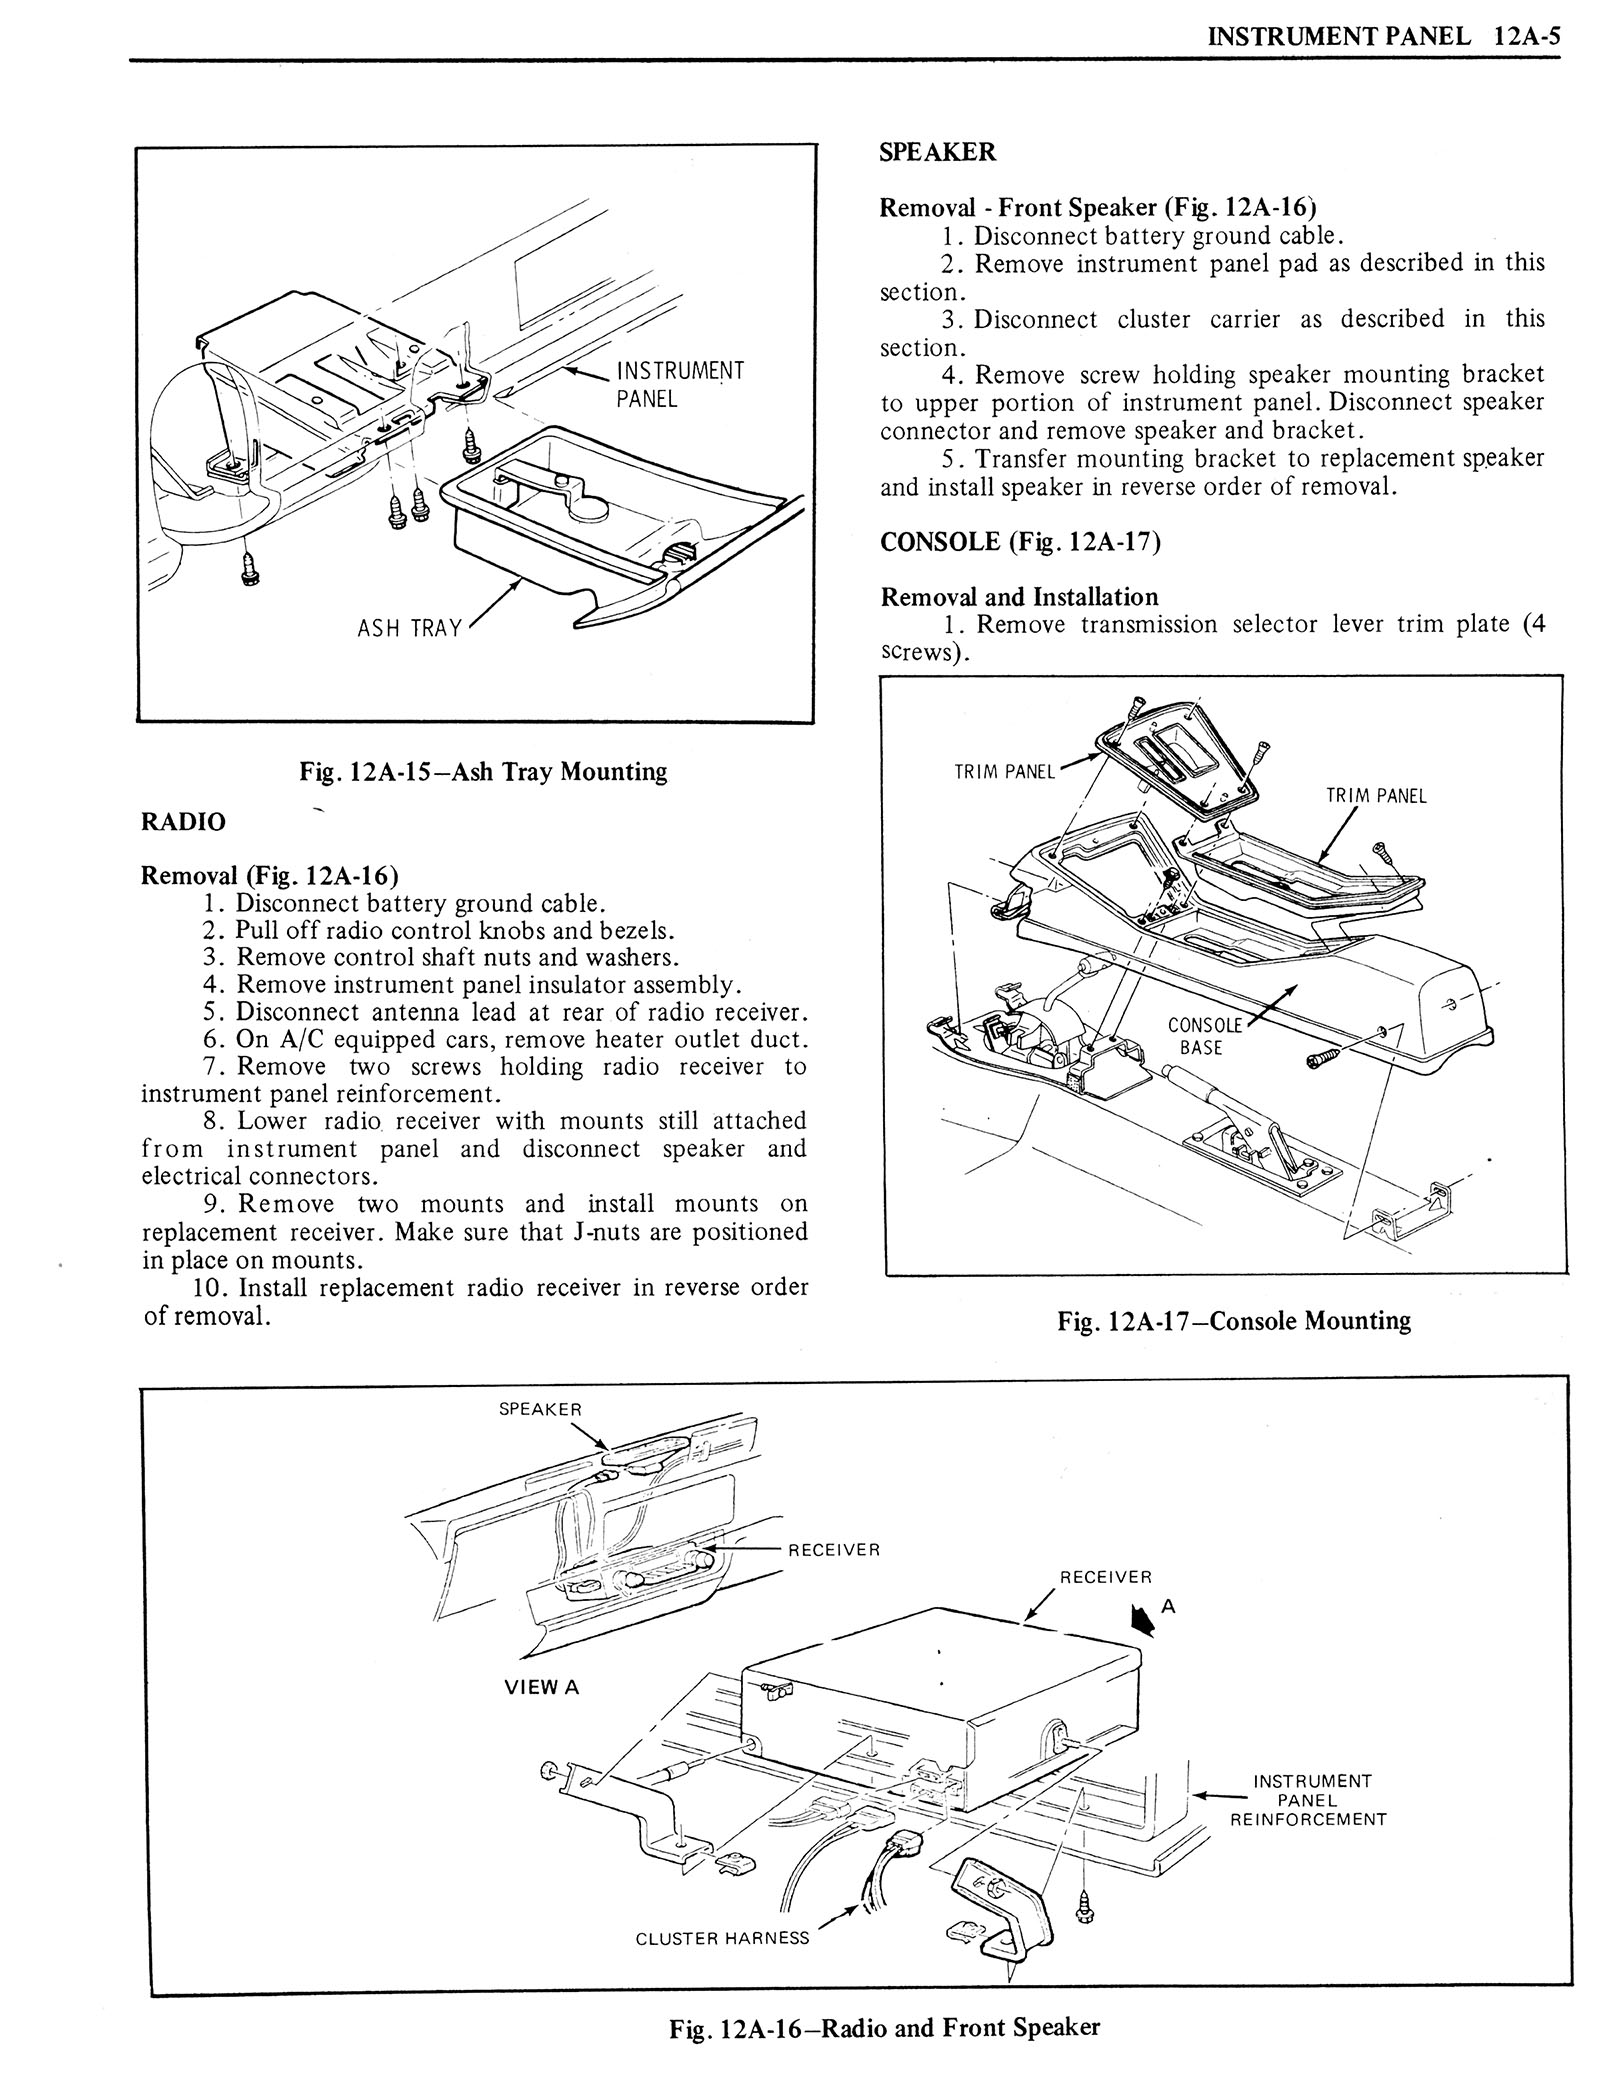 1976 Oldsmobile Service Manual page 1239 of 1390